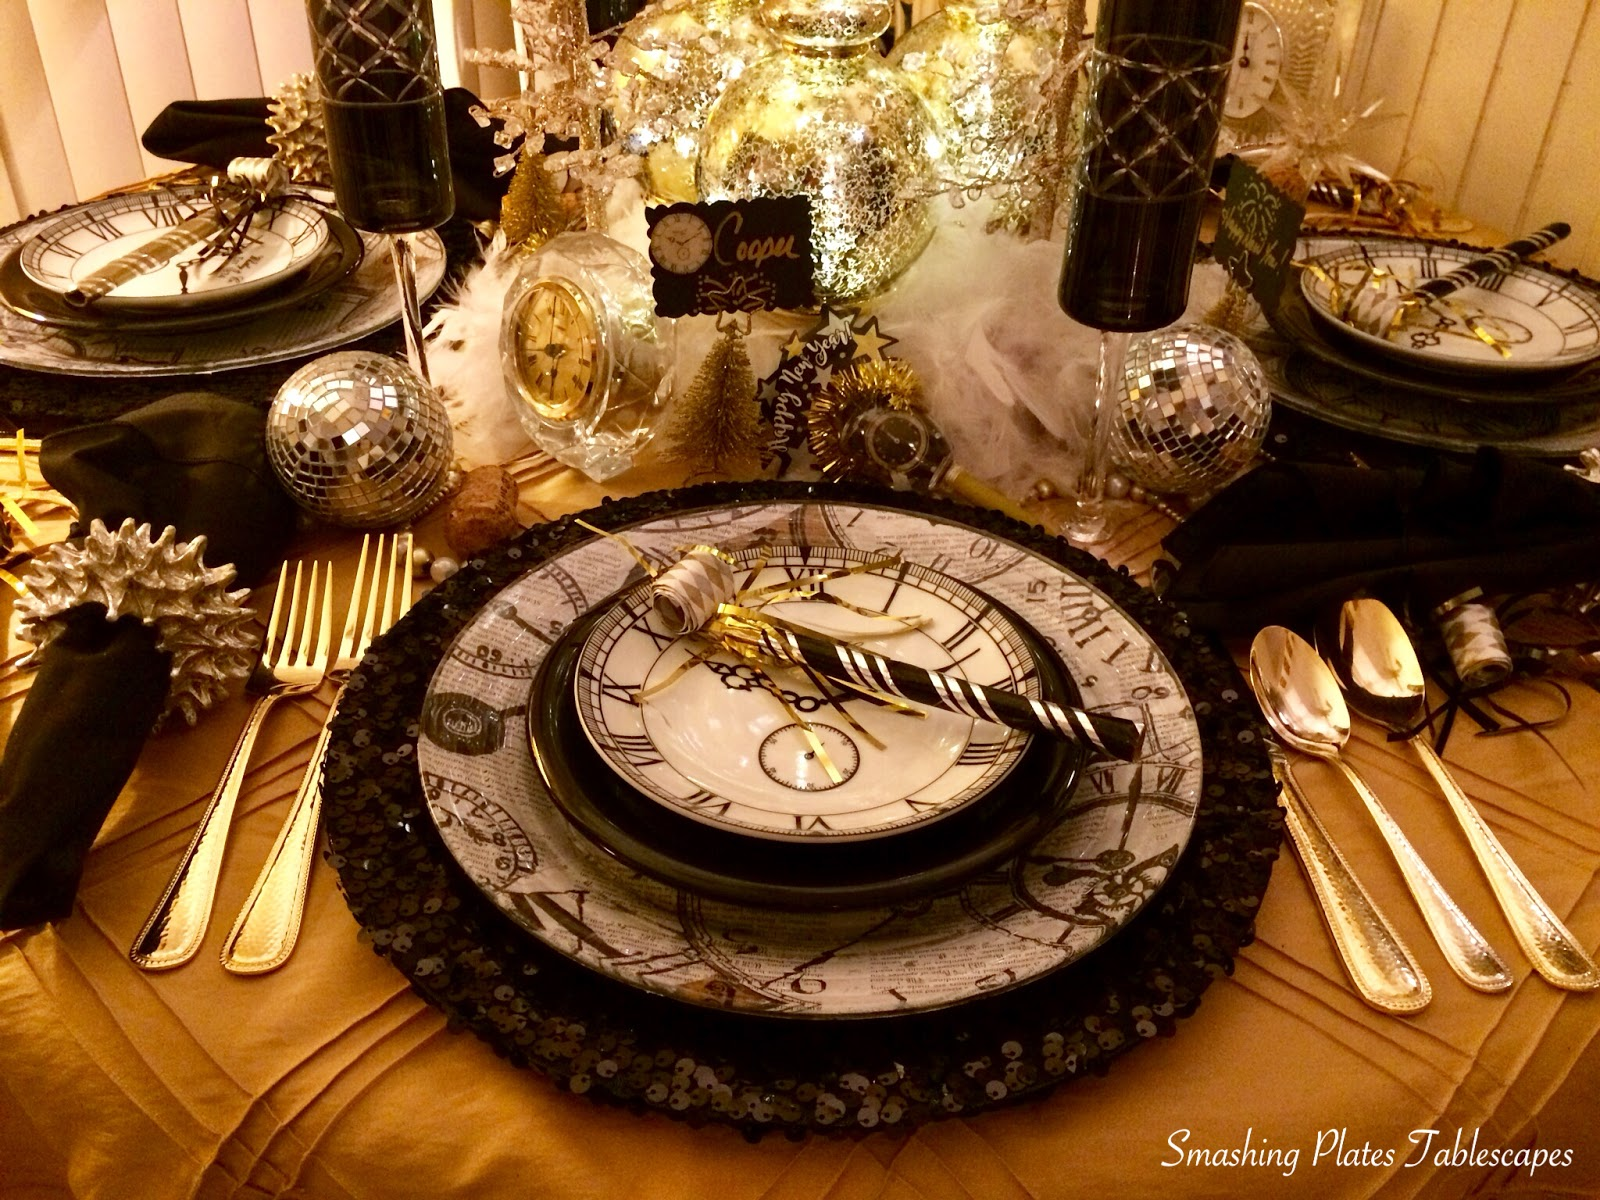 Smashing Plates Tablescapes Bling In The New Year